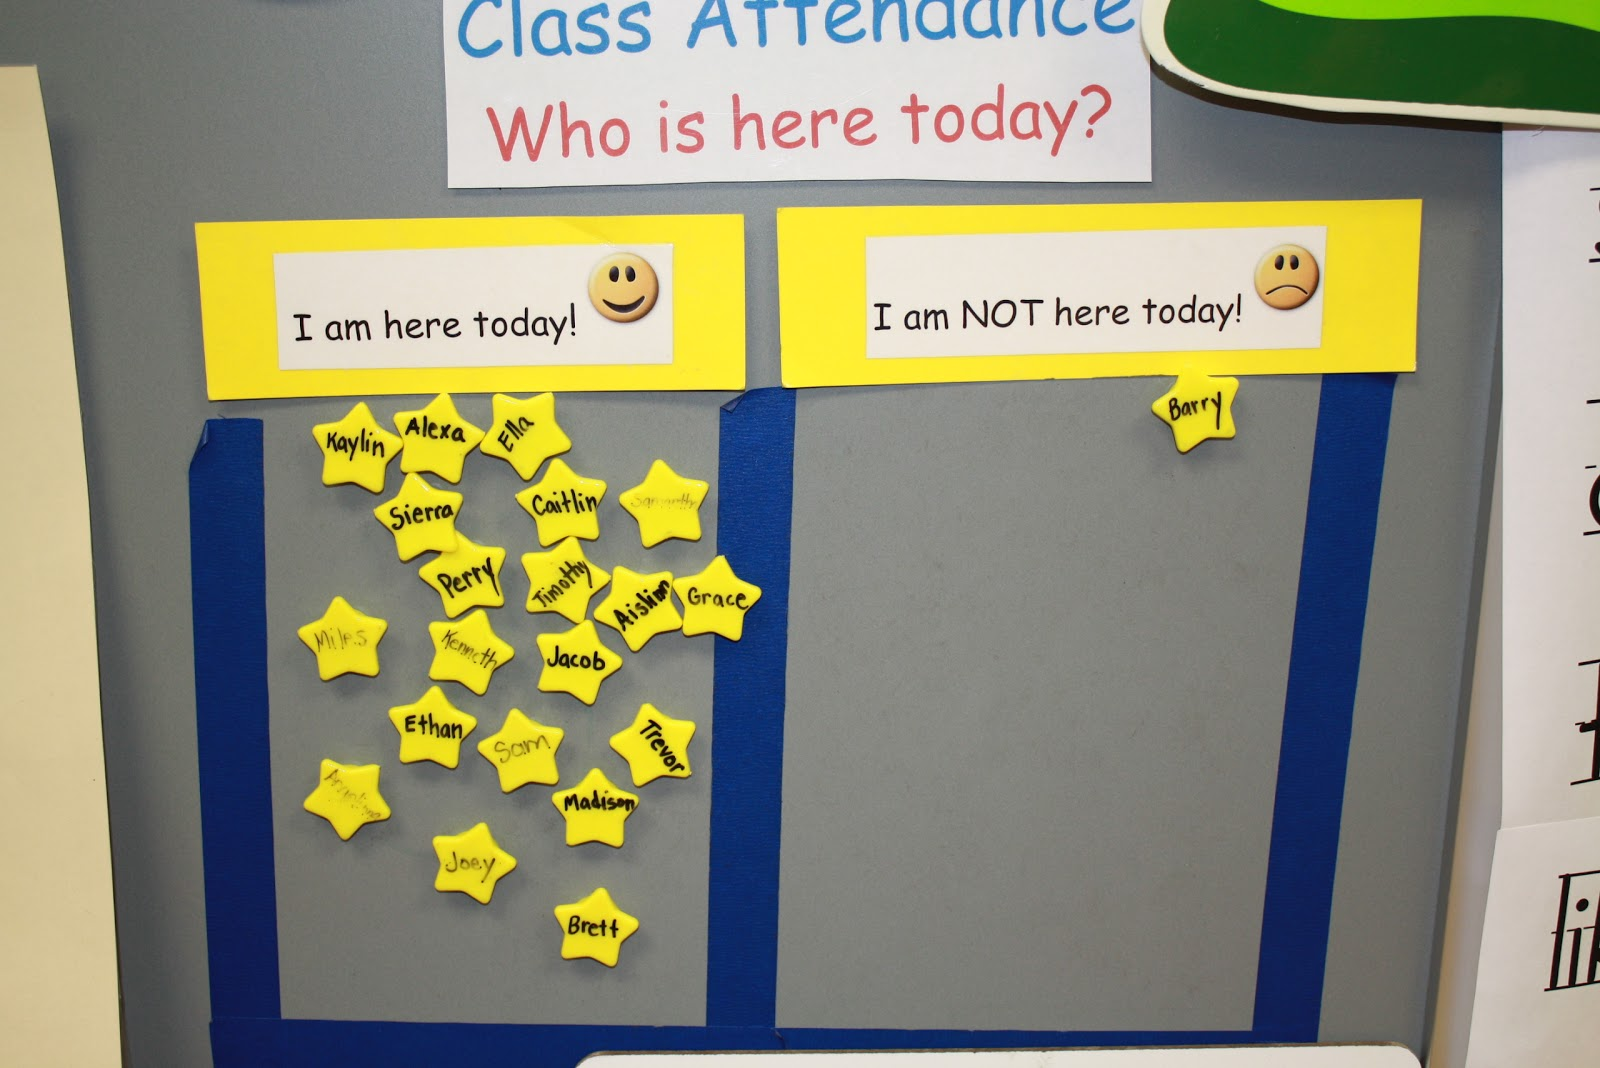 Classroom Attendance Ideas : Attendance sign in for pre kindergarten ideas free image